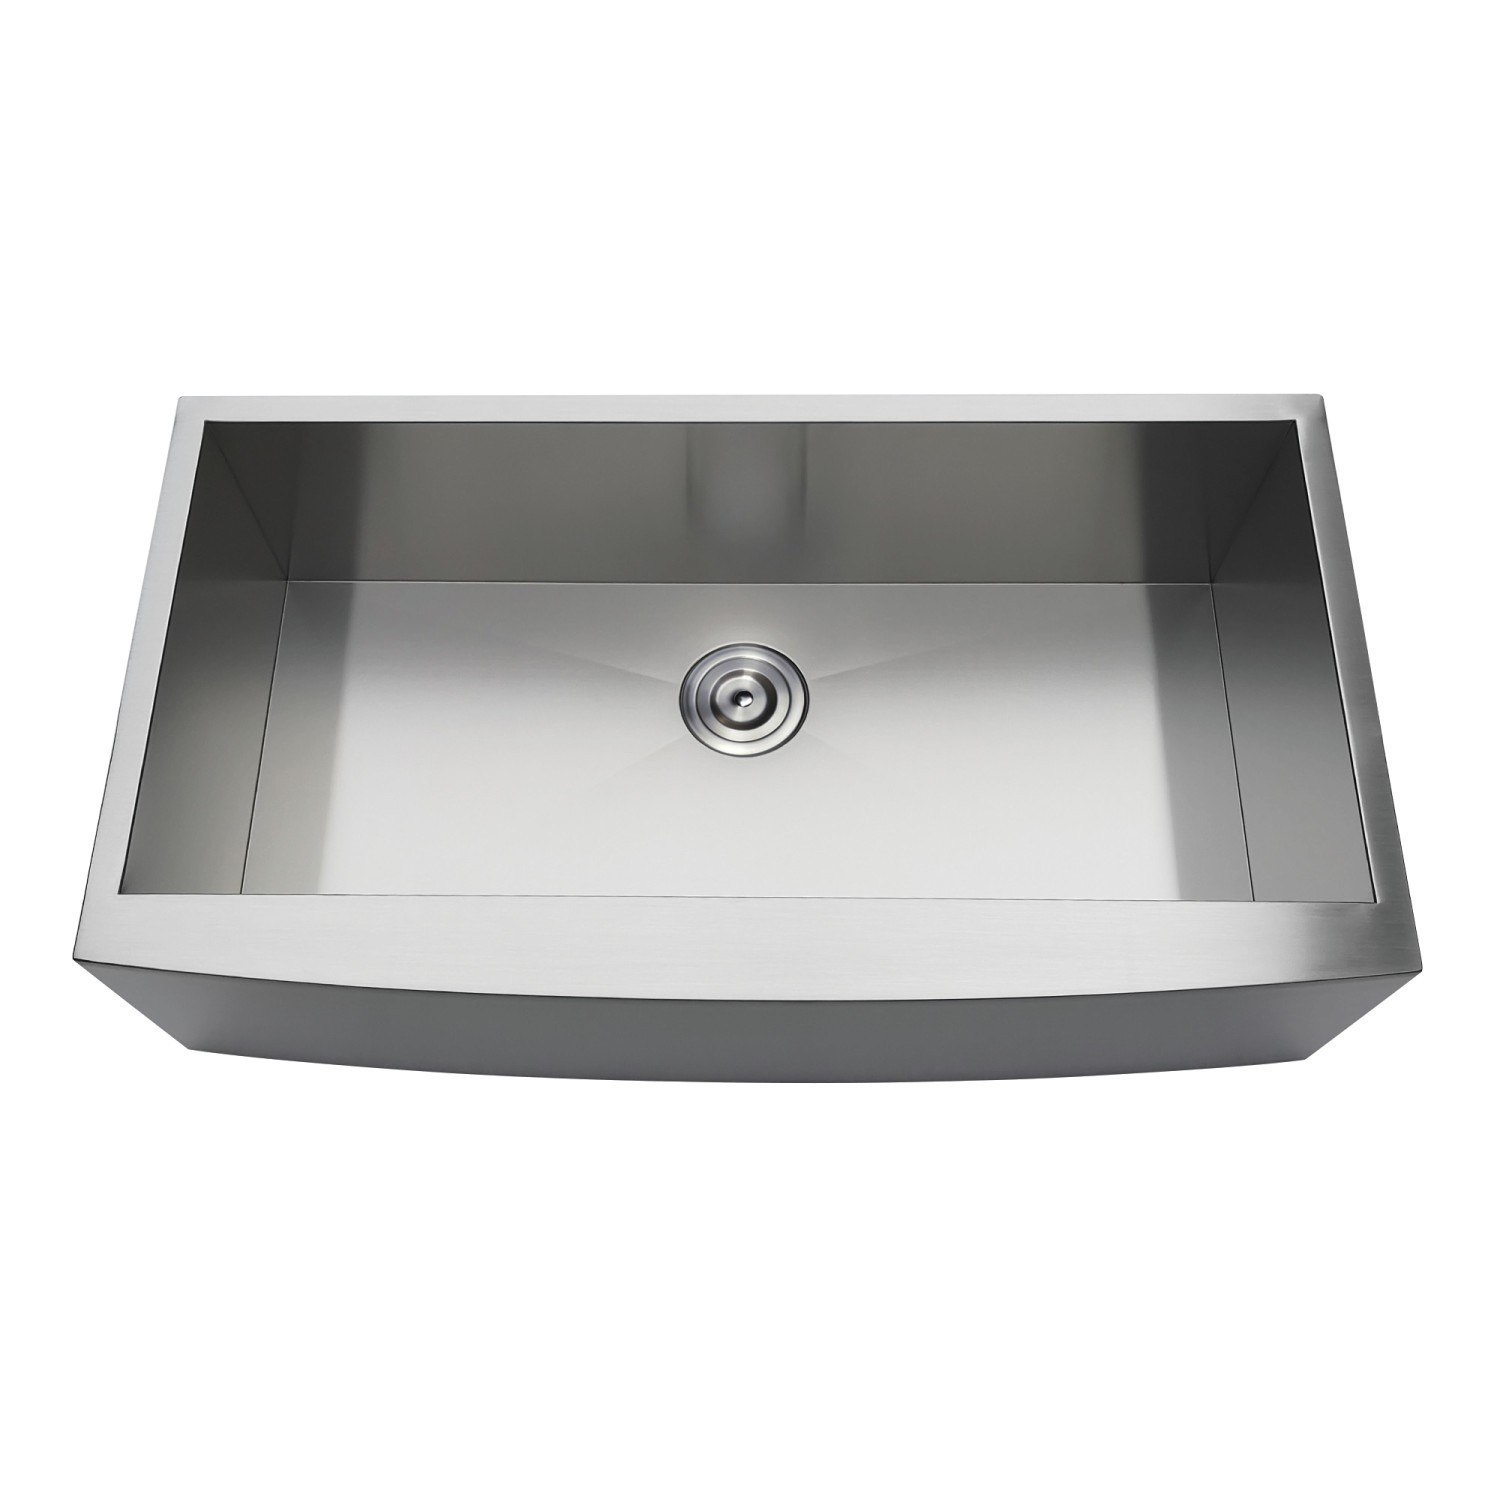 KINGSTON BRASS GKUSF36209 GOURMETIER UPTOWNE 36 INCH UNDERMOUNT STAINLESS STEEL SINGLE FARMHOUSE KITCHEN SINK